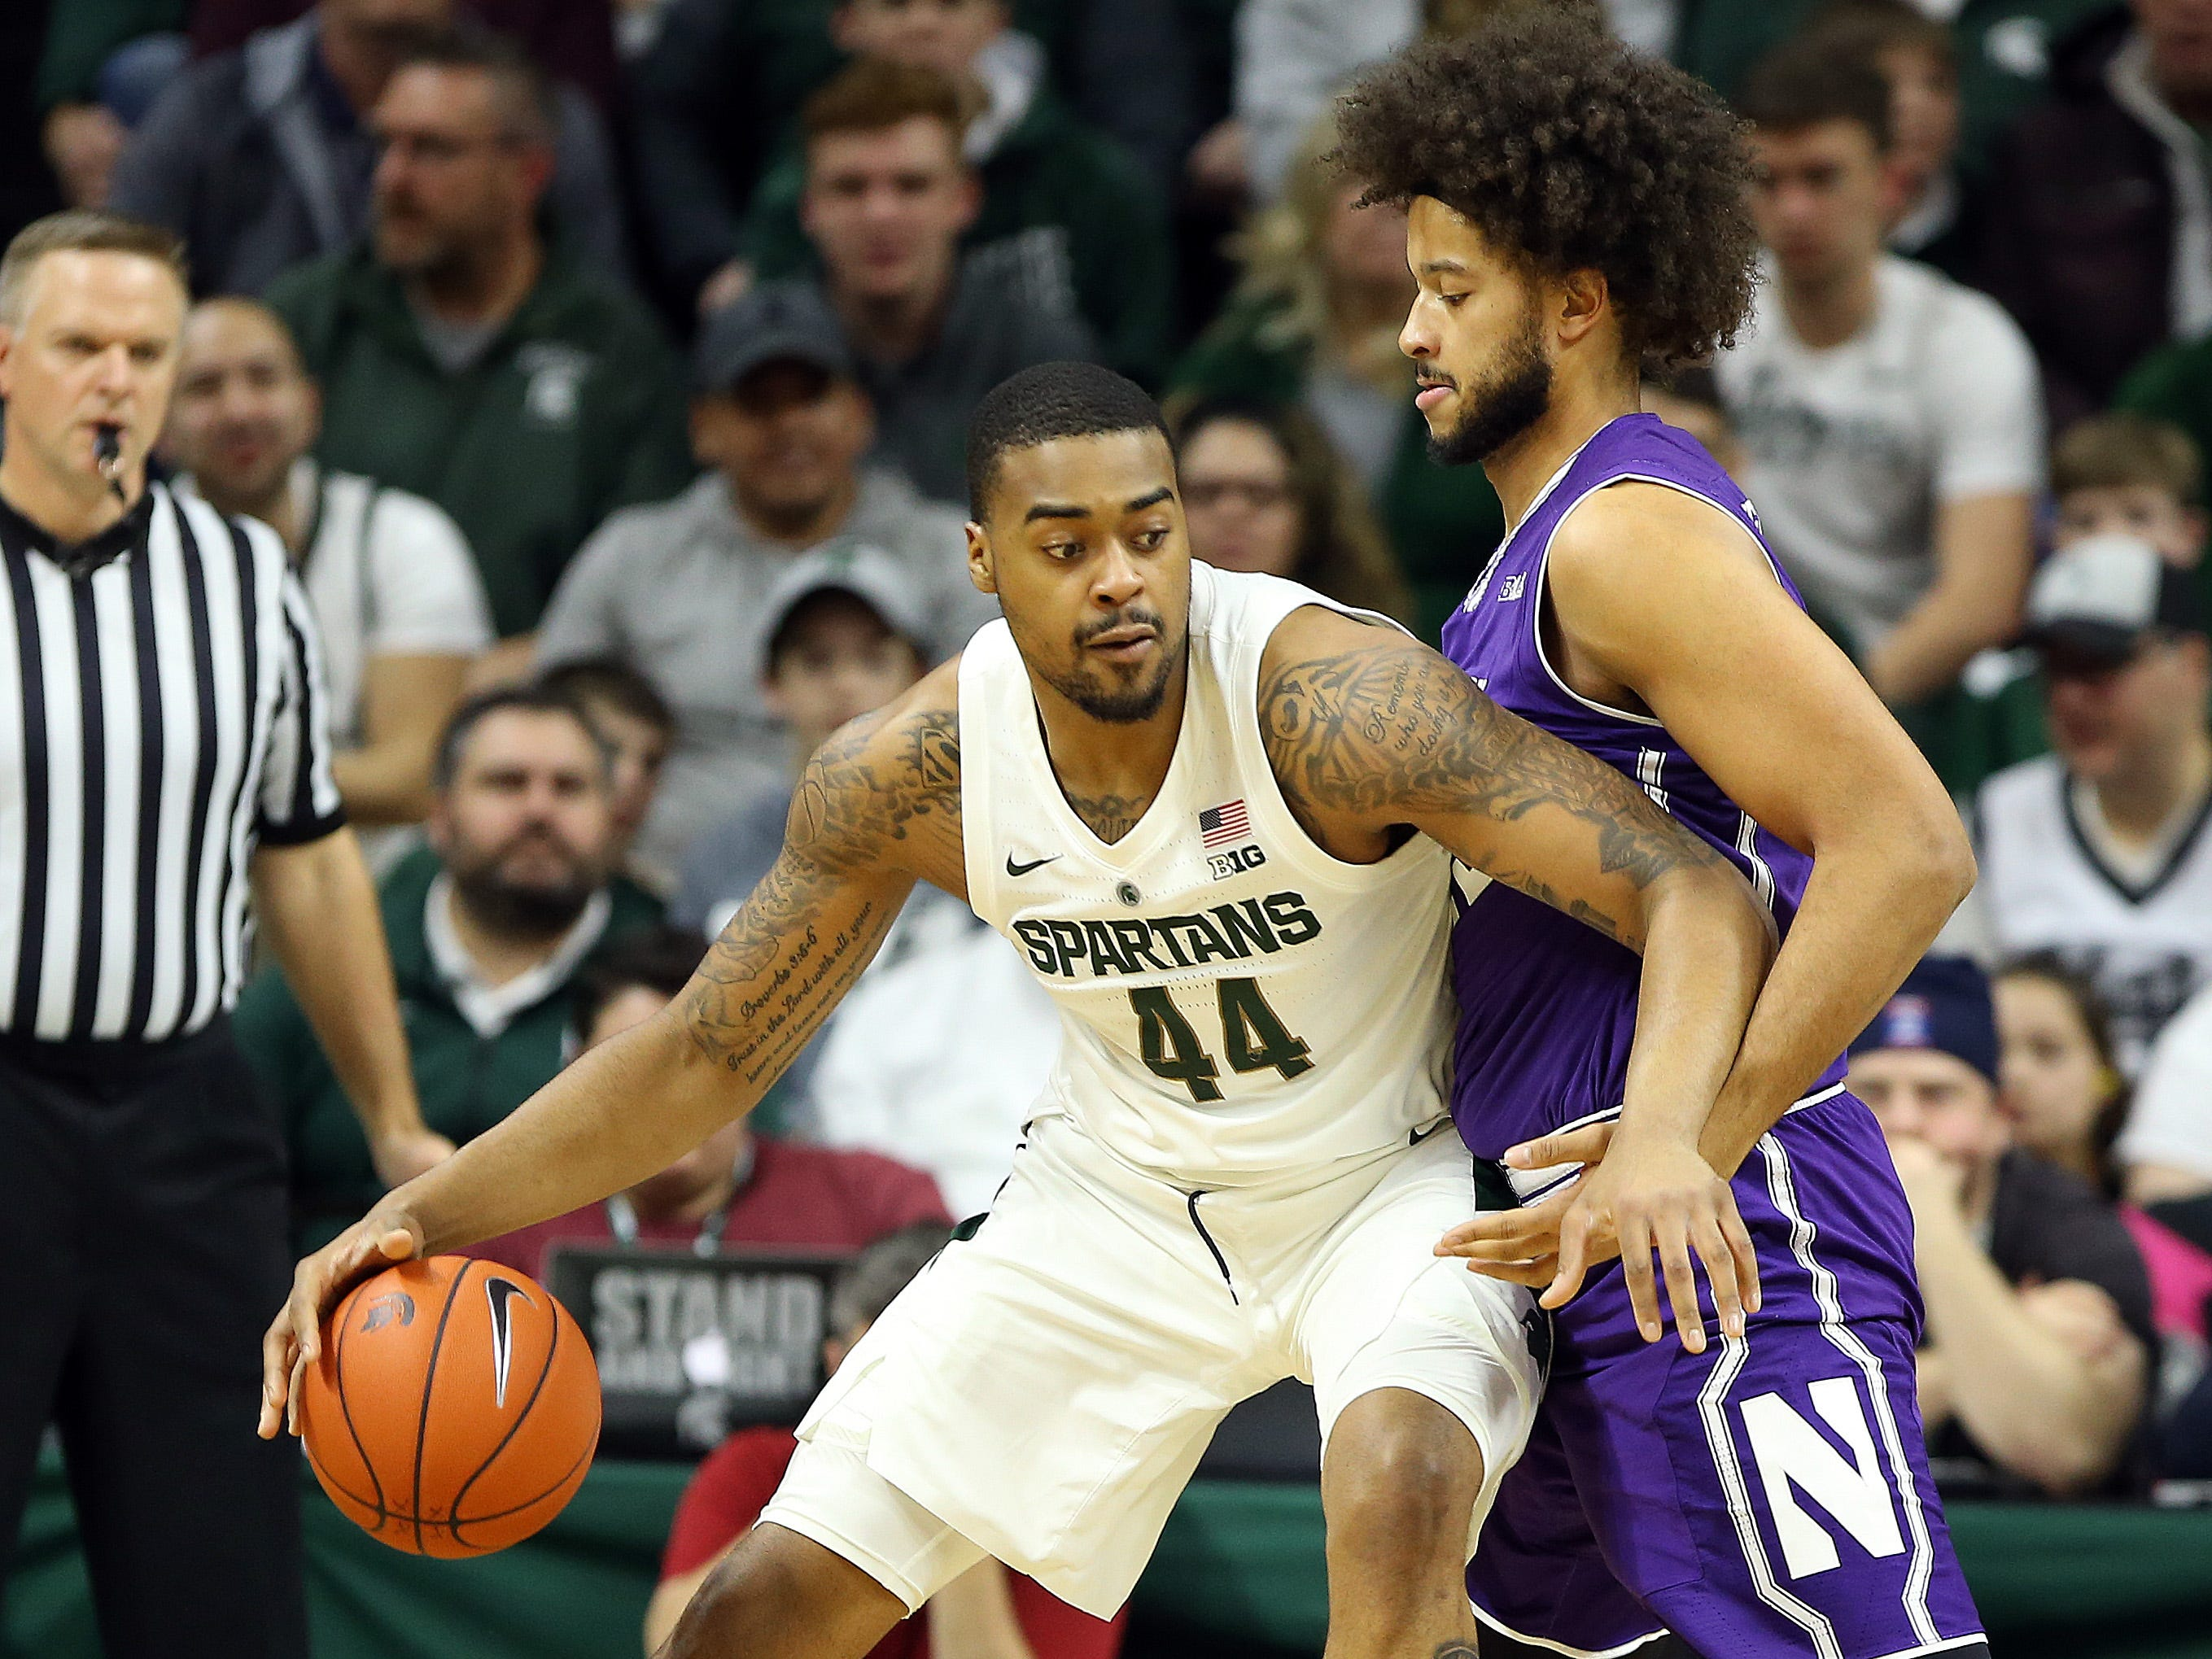 Jan 2, 2019; East Lansing, MI, USA; Michigan State Spartans forward Nick Ward (44) is defended by Northwestern Wildcats center Barret Benson (25) during the first half of a game at the Breslin Center. Mandatory Credit: Mike Carter-USA TODAY Sports